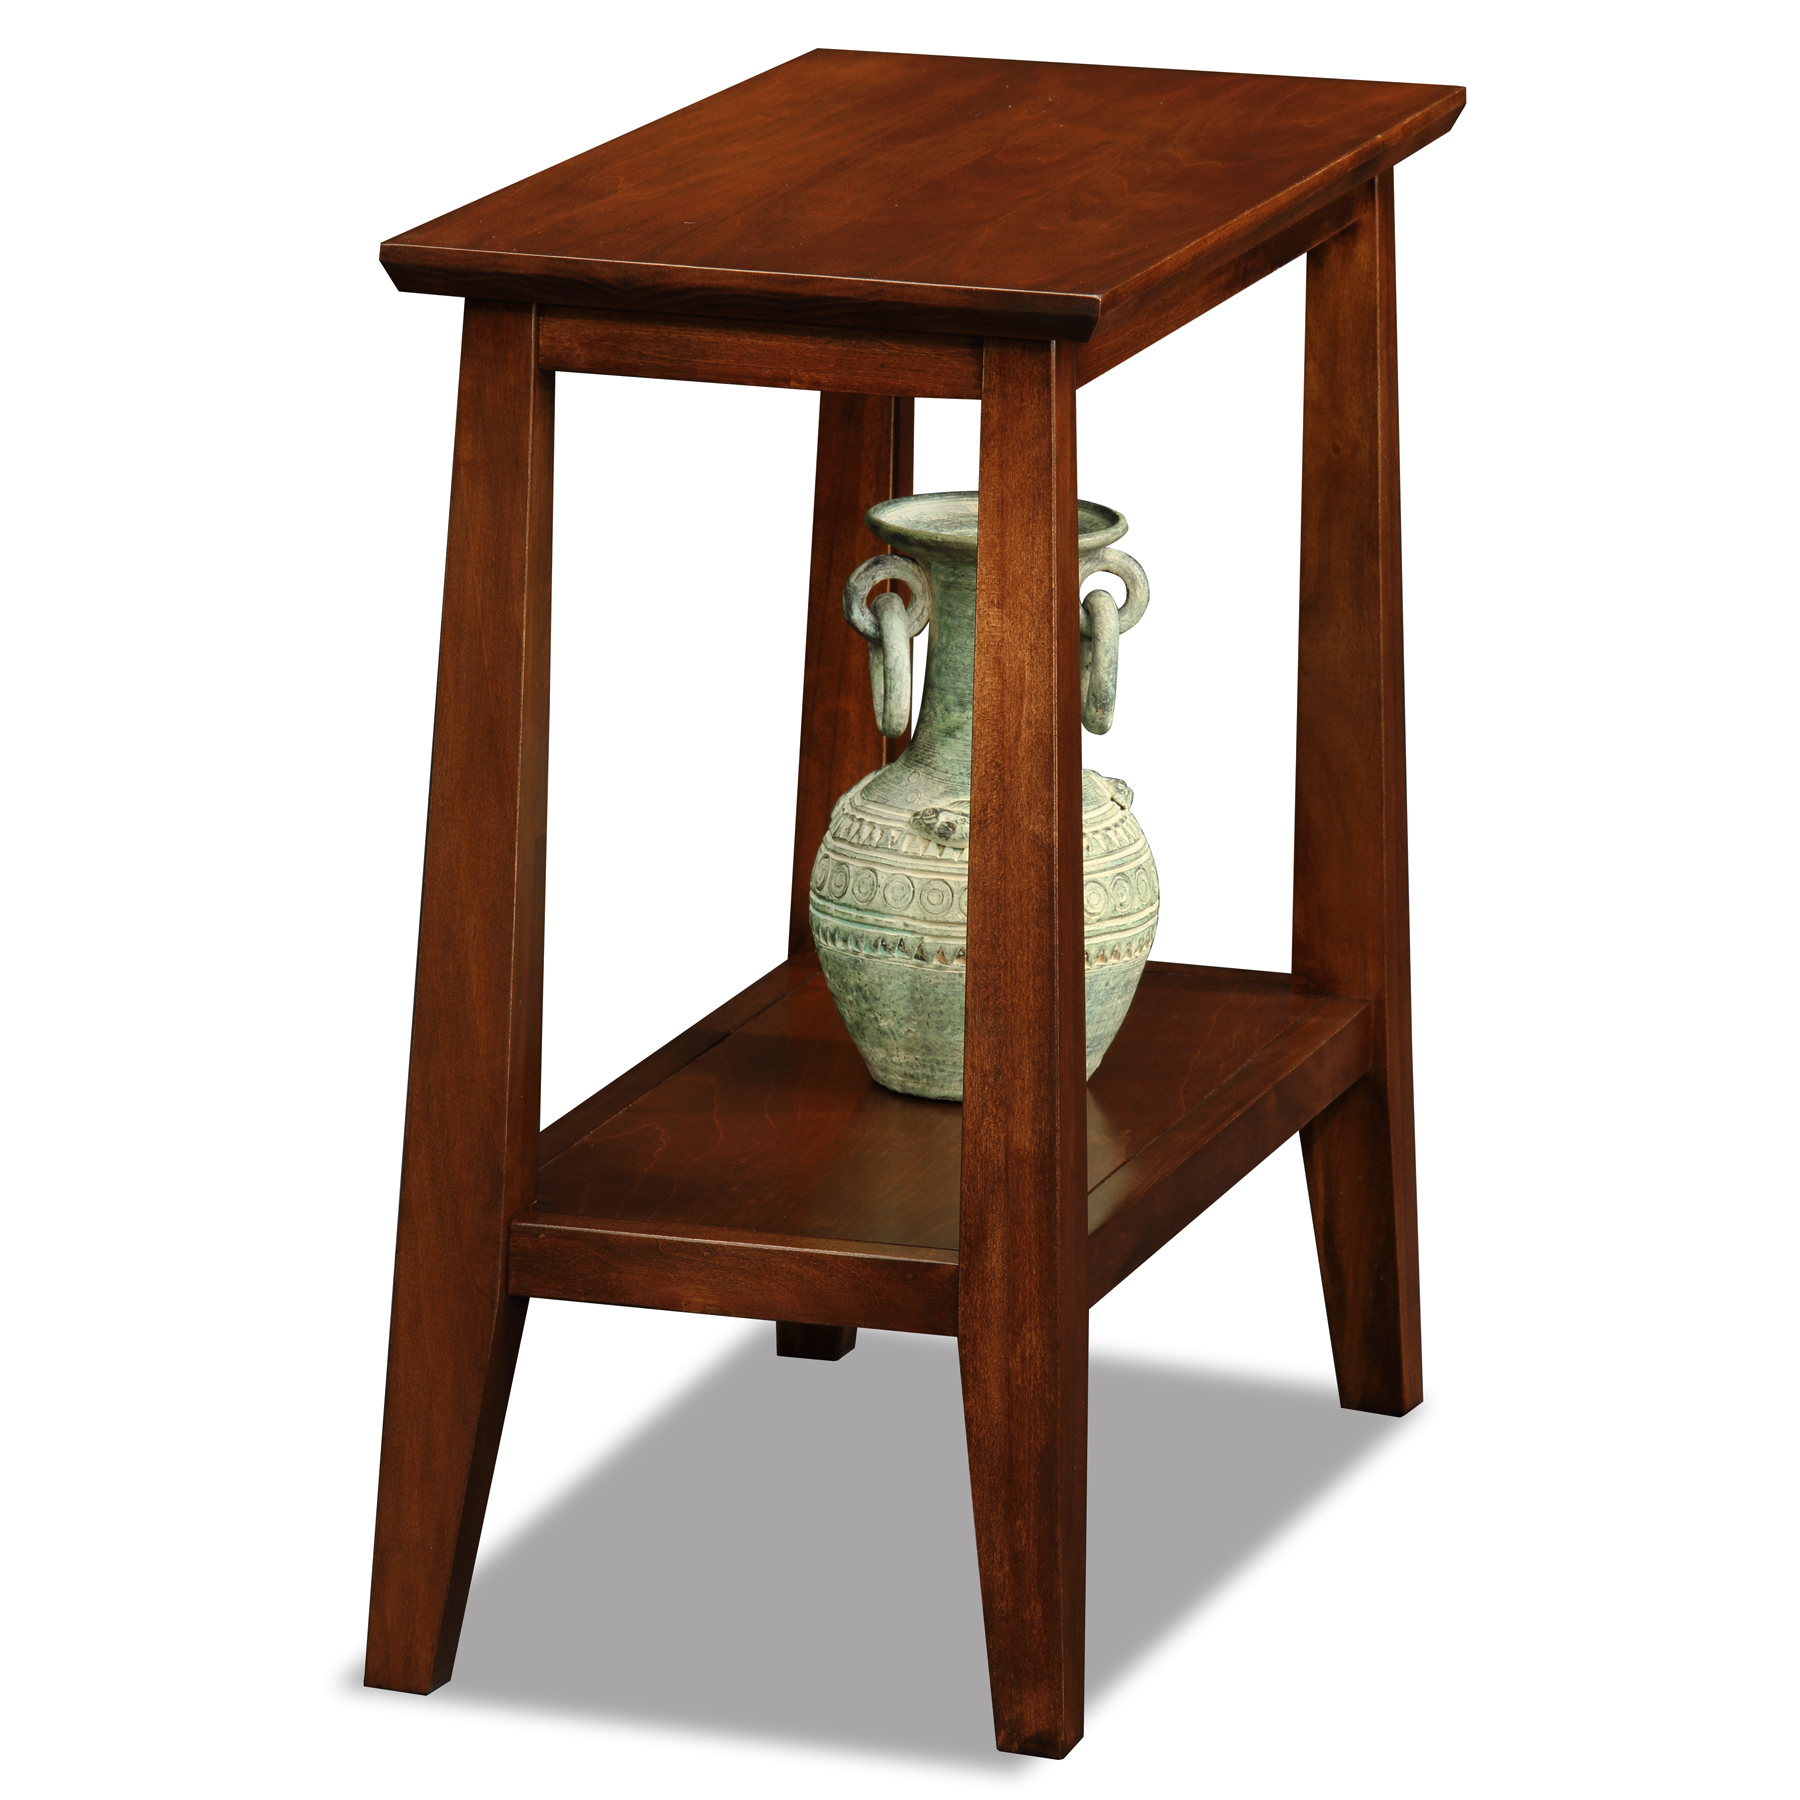 Modern Chairside Table Leick Delton Narrow Chairside Solid Wood End Table